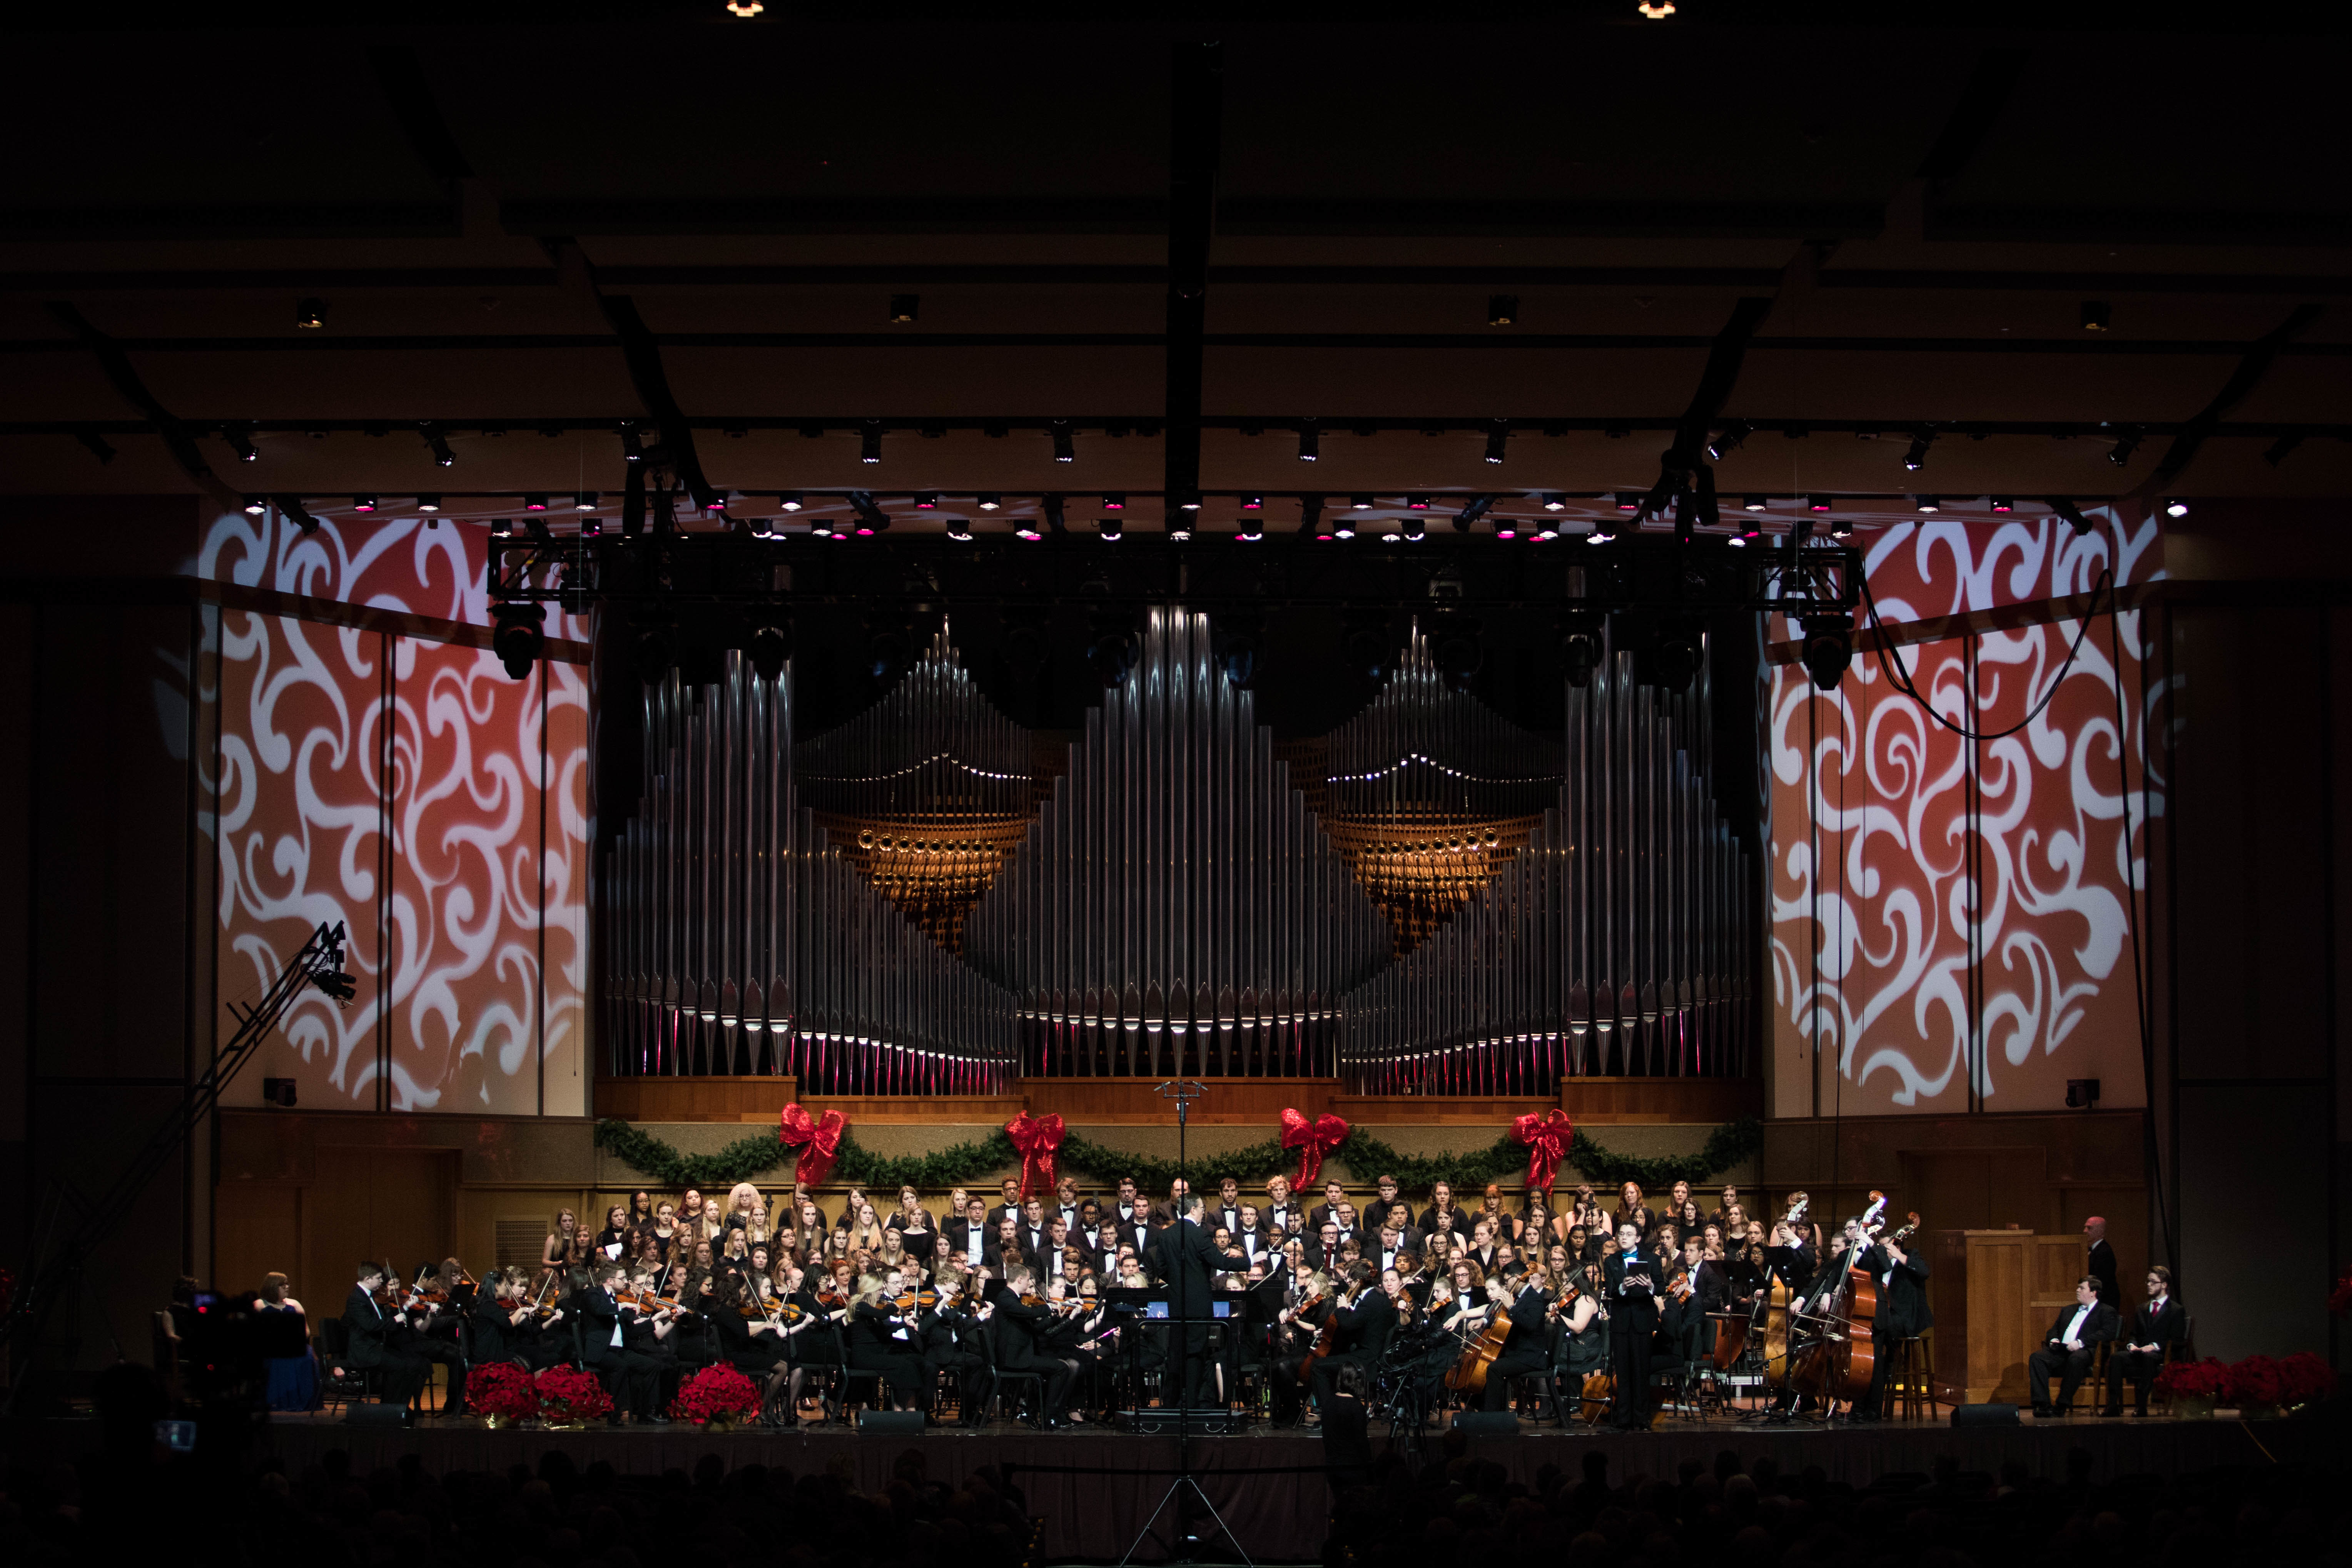 Event olivet handel messiah school of music concert christmas ensemble